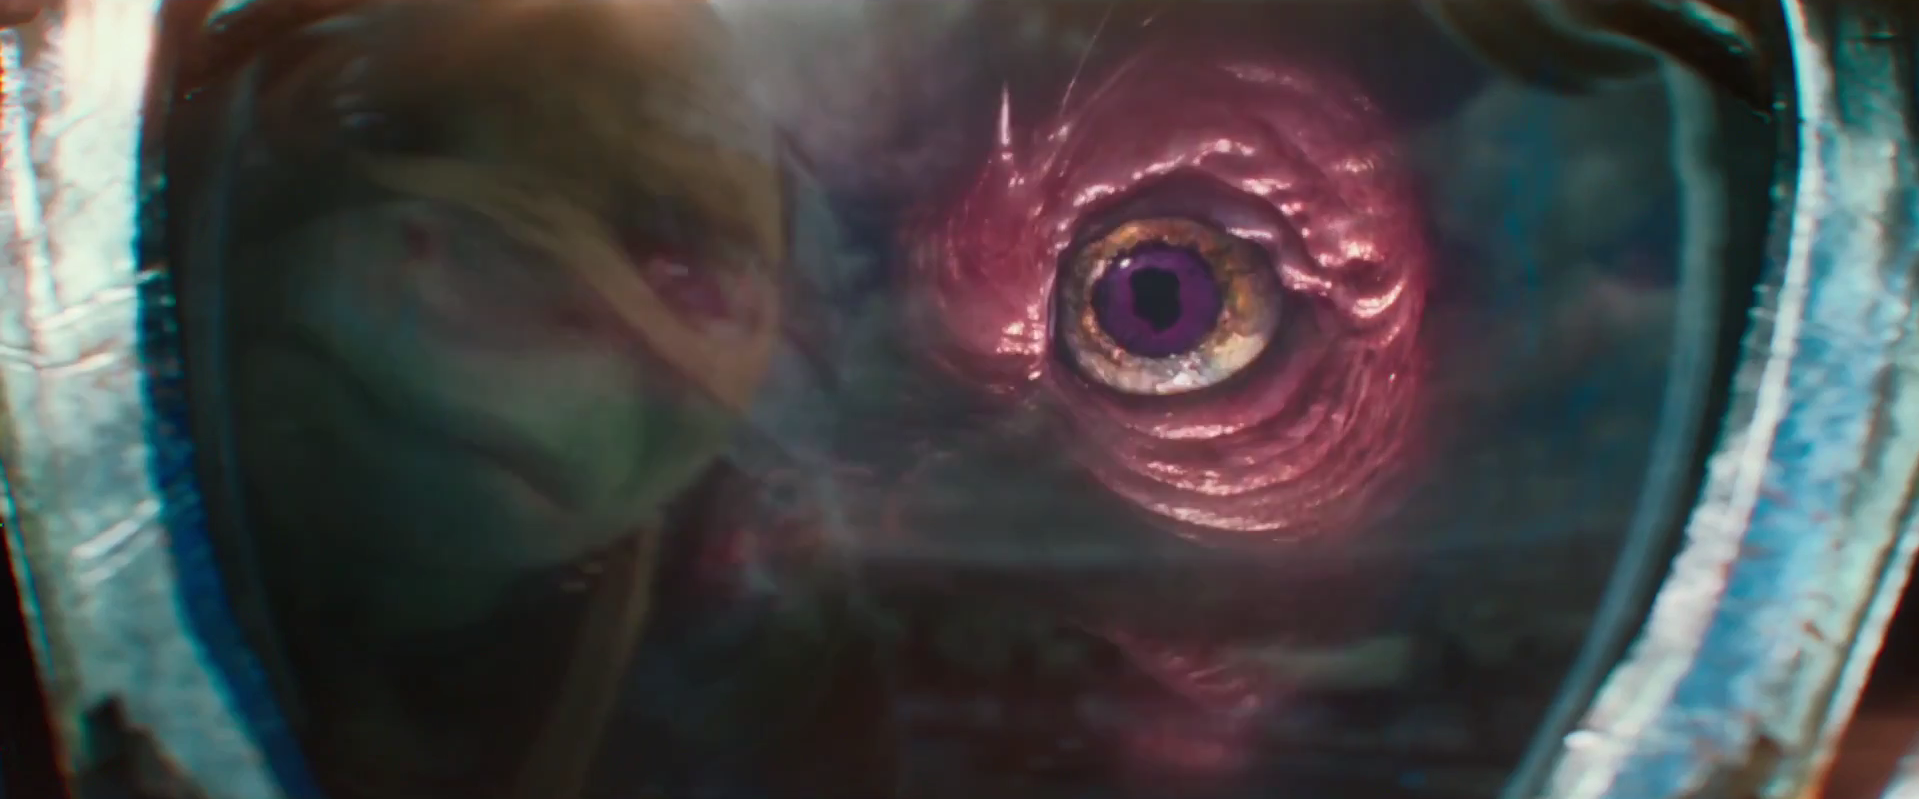 The Final Teenage Mutant Ninja Turtles: Out of the Shadows Trailer Reveals Its Krang